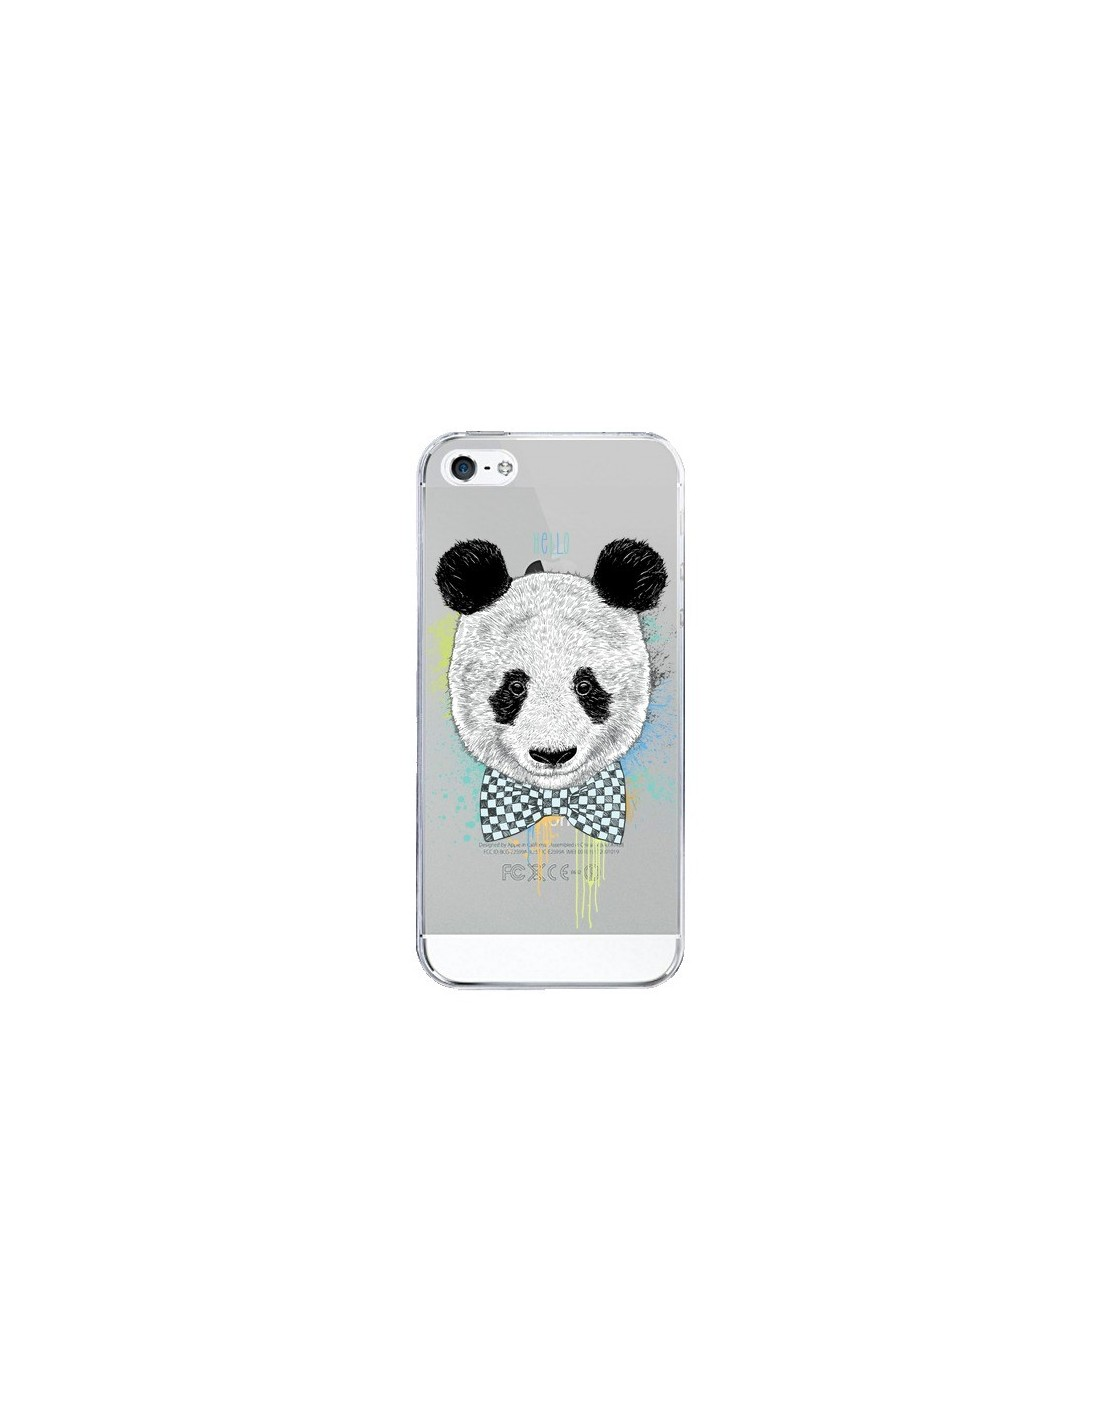 coque panda noeud papillon transparente pour iphone 5 5s et se rachel caldwell. Black Bedroom Furniture Sets. Home Design Ideas